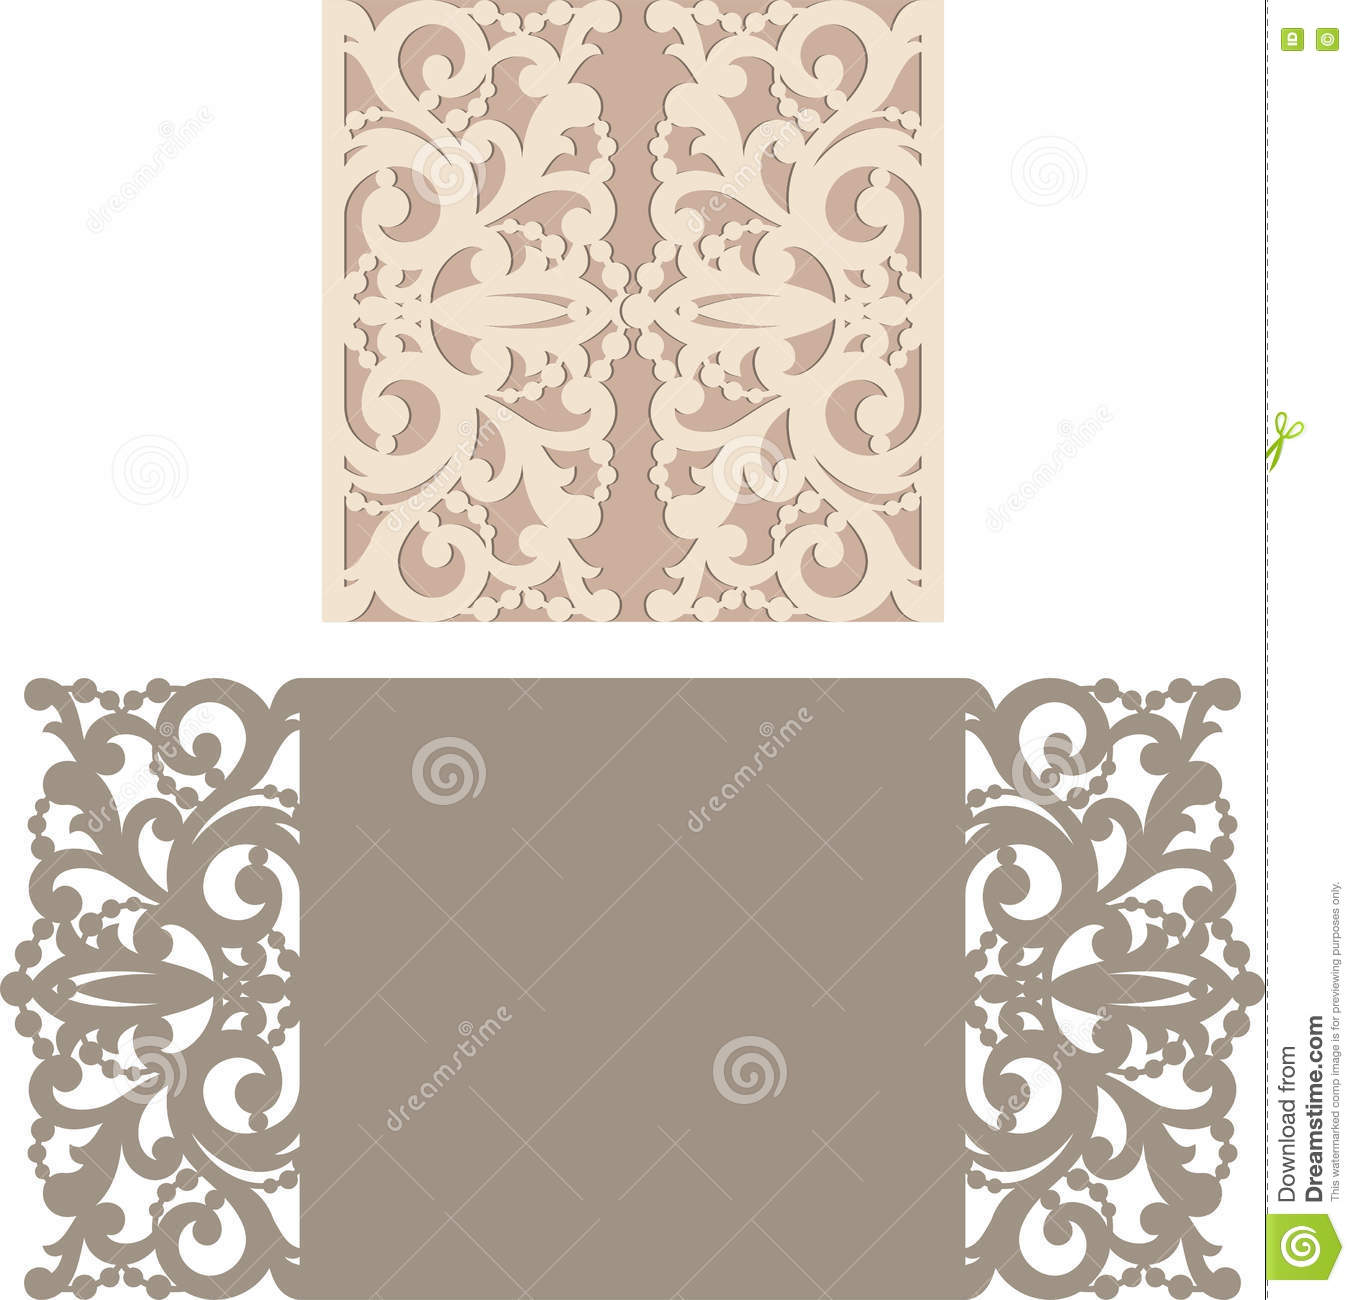 Laser cut envelope template for invitation wedding card stock vector image 73943466 for Free laser cutter templates